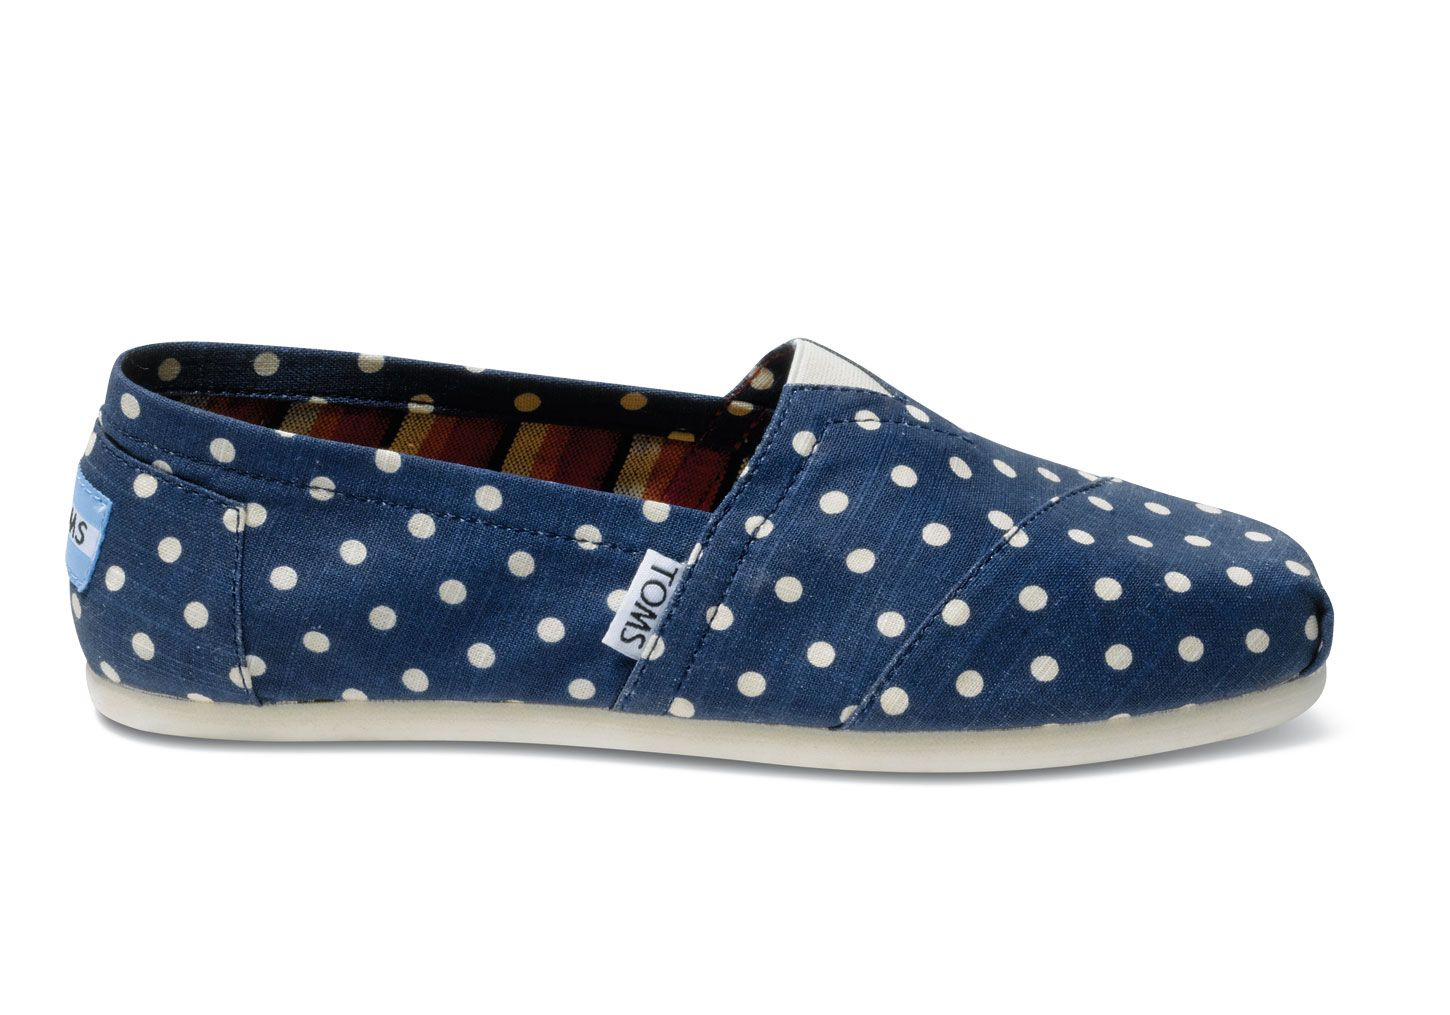 Read product features of Navy Polka Dots Linen Women's Classics - TOMS  Women's Sale Shoes Blue,Blue,White.